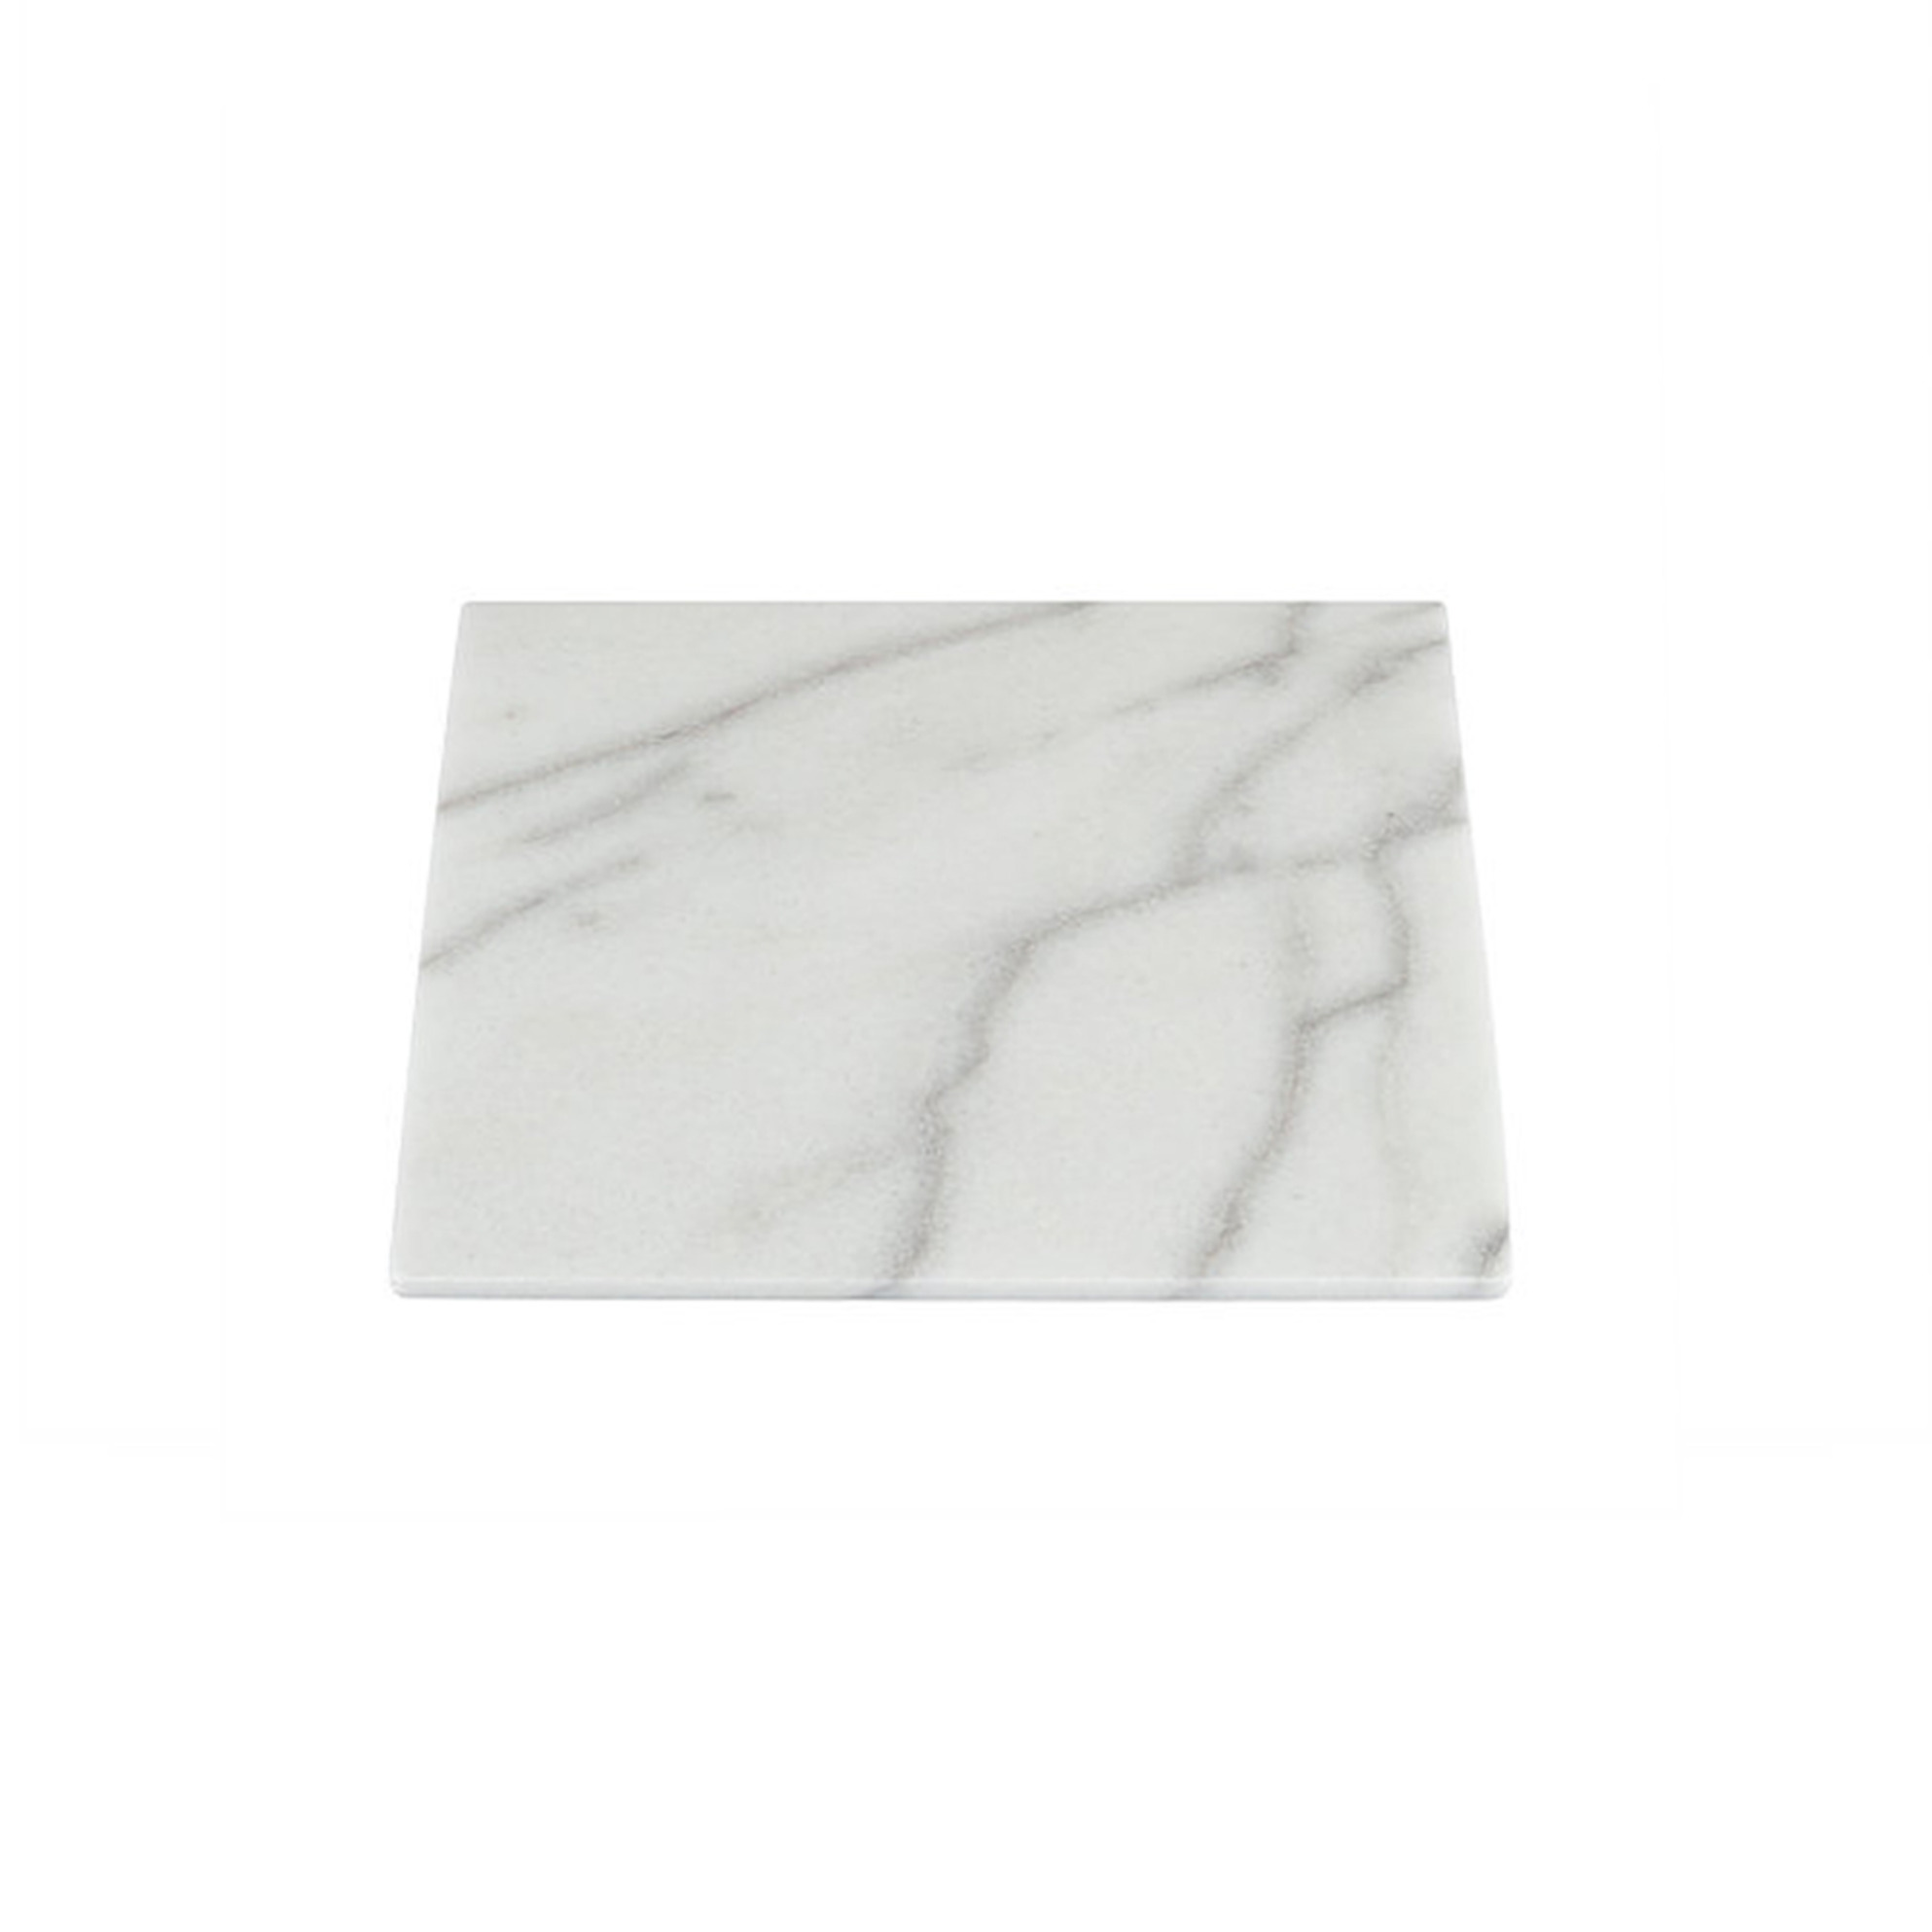 Stone Marble Board 30 (White)